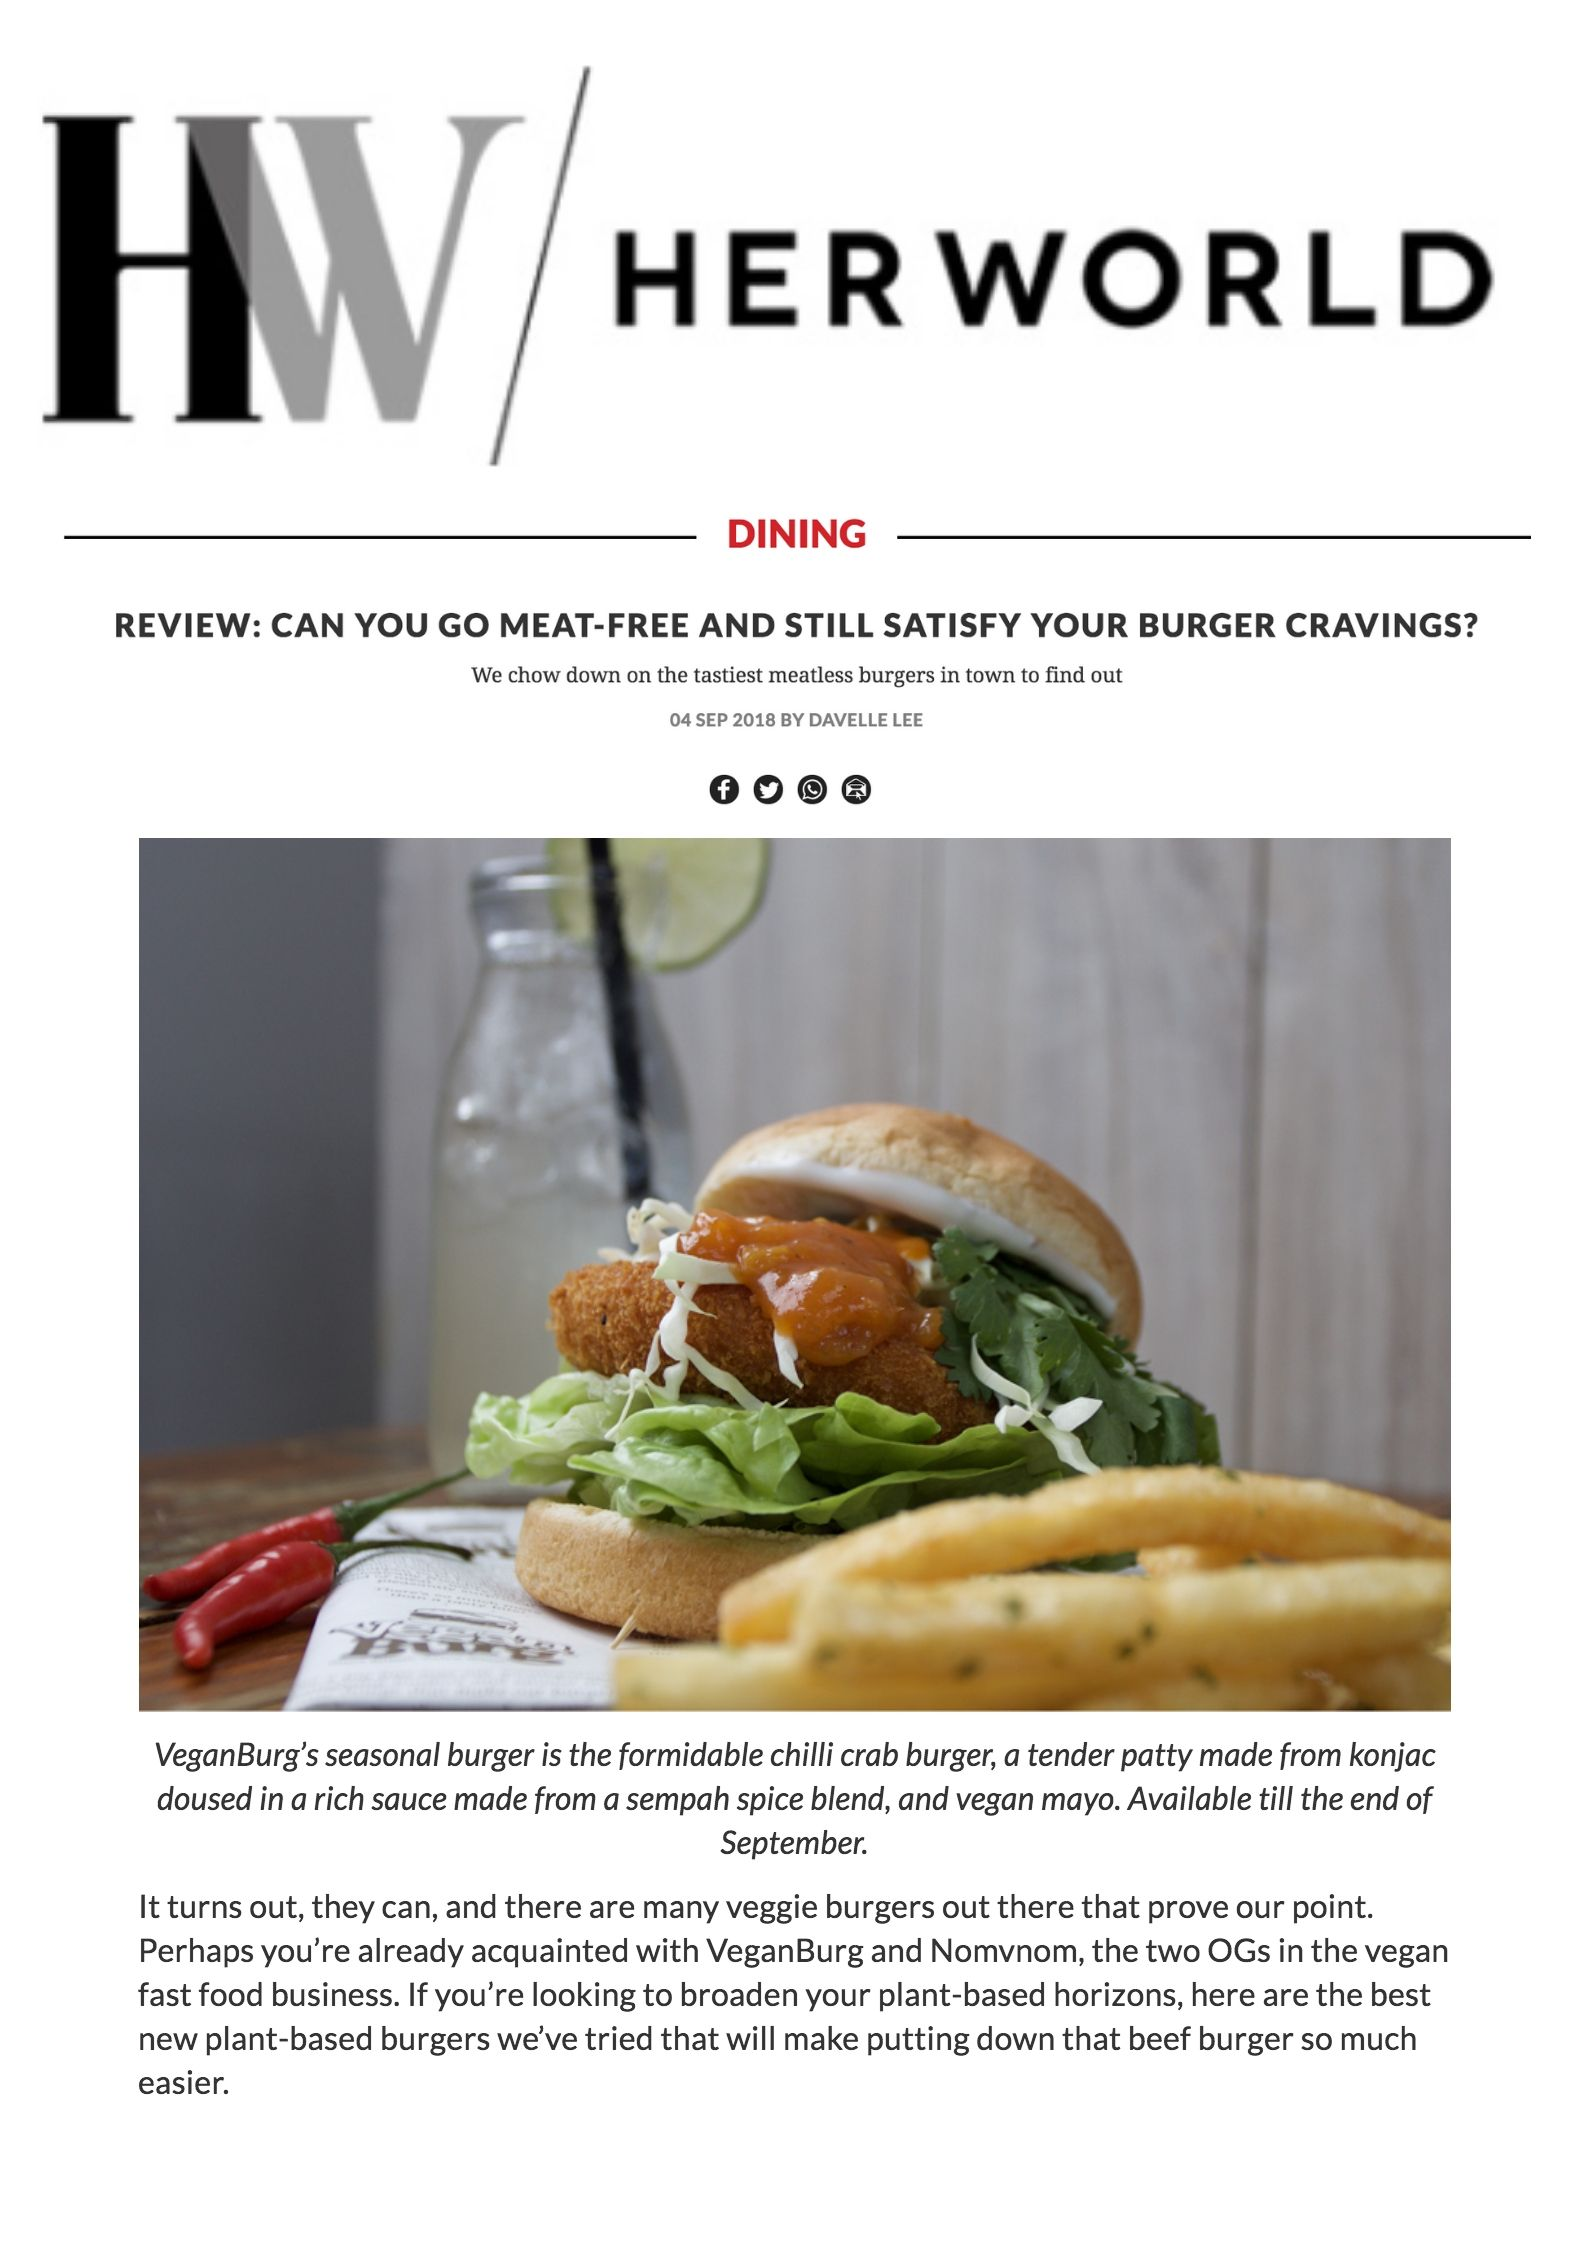 Her World_ CAN YOU GO MEAT-FREE AND STILL SATISFY YOUR BURGER CRAVINGS_.jpg